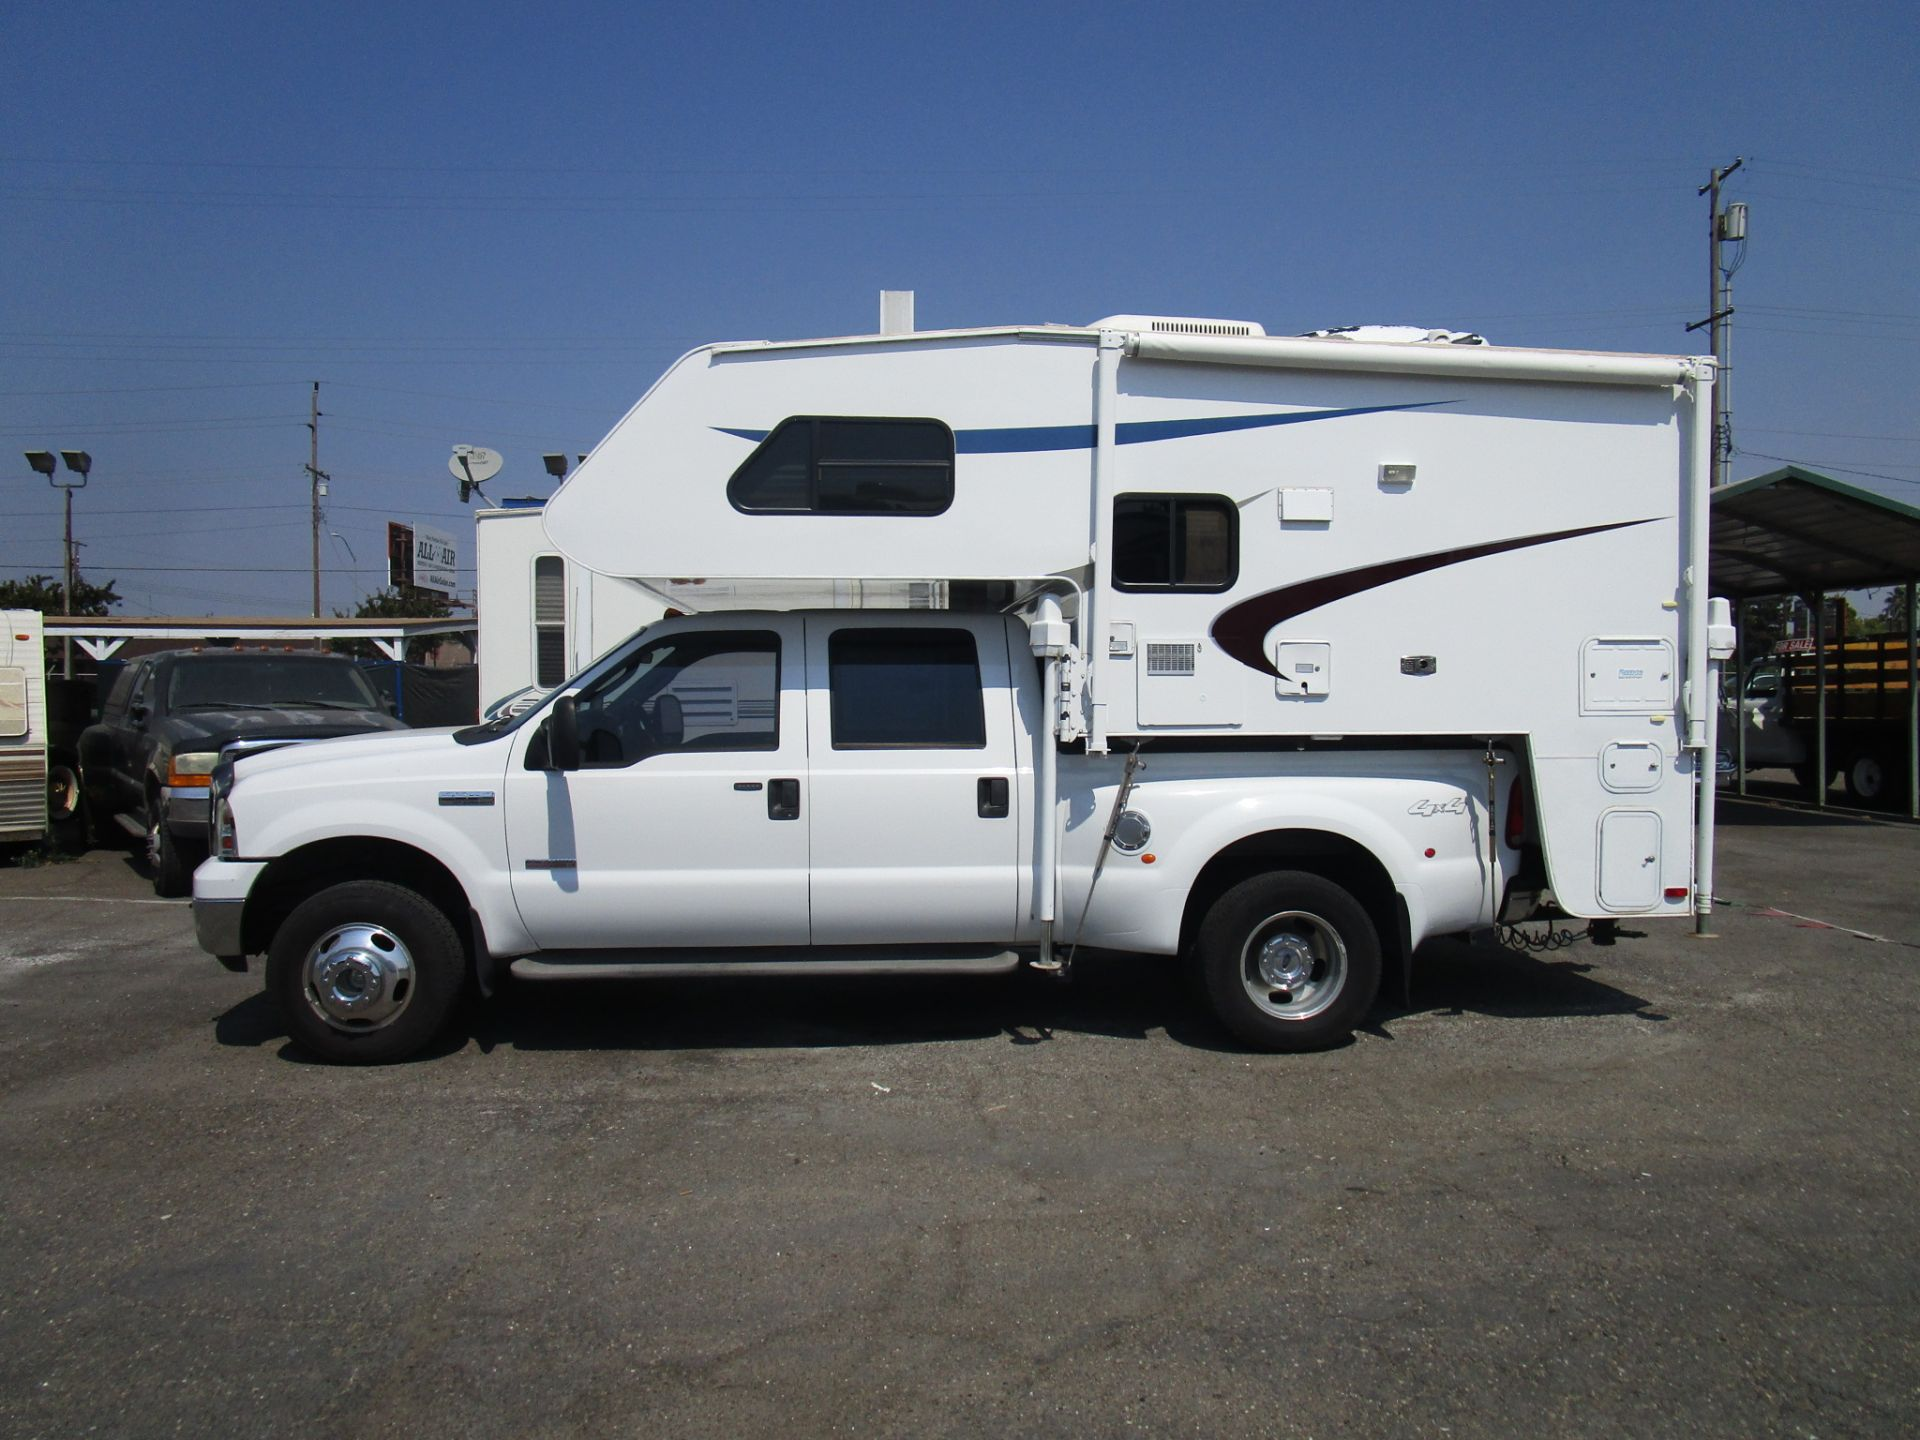 2004 Lance Cab-Over Camper Model 821